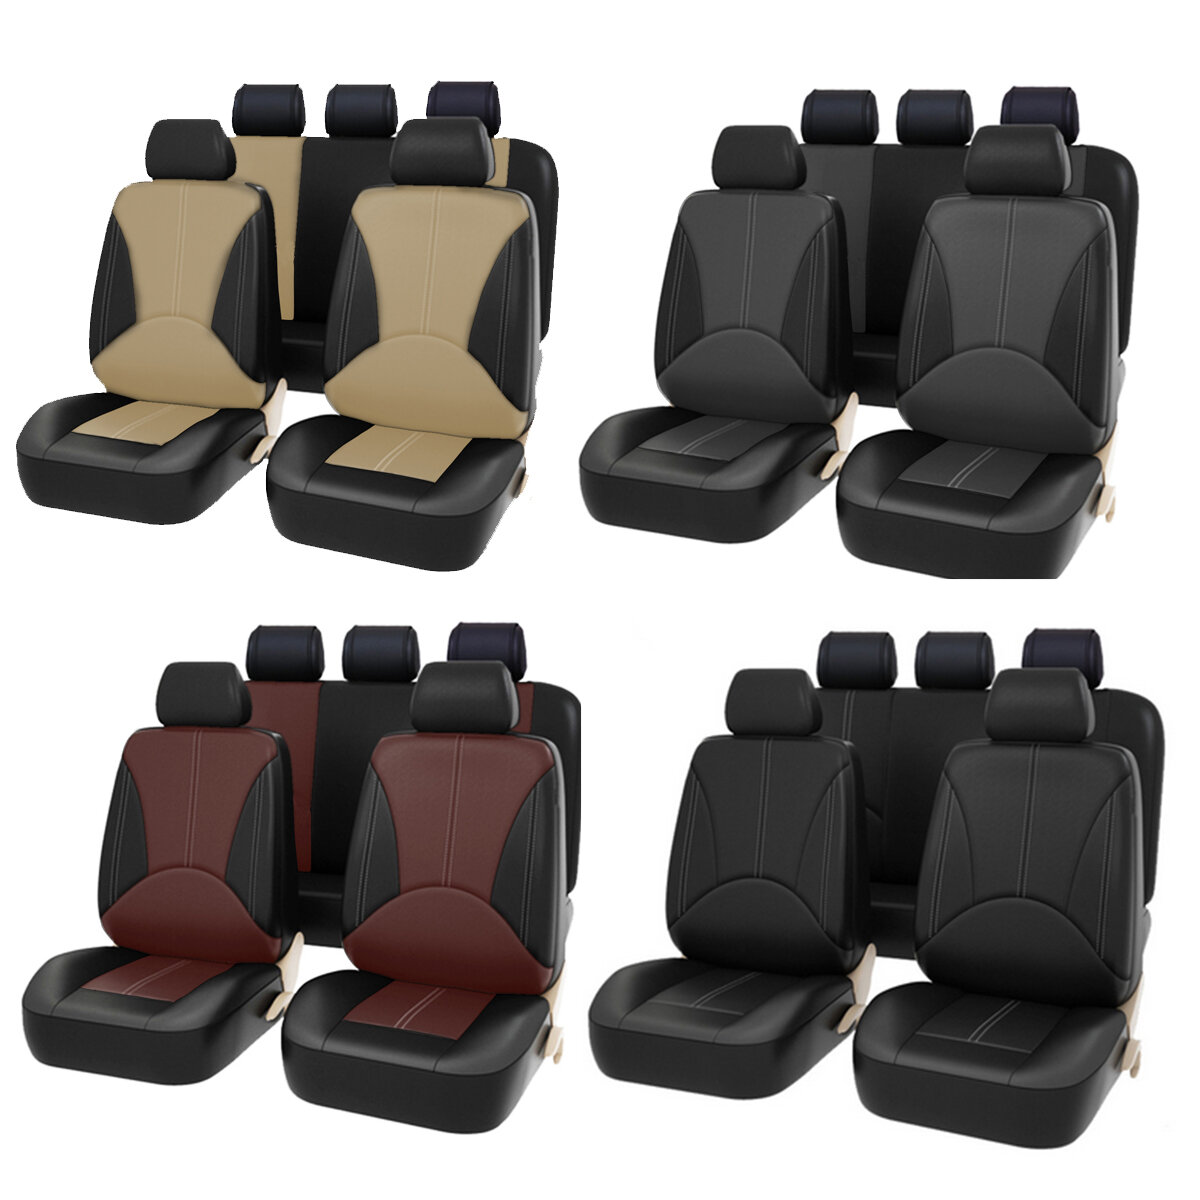 Bucket Seat Cover Set Front Rear Universal for Car Sedan Truck SUV PU Leather, Banggood  - buy with discount